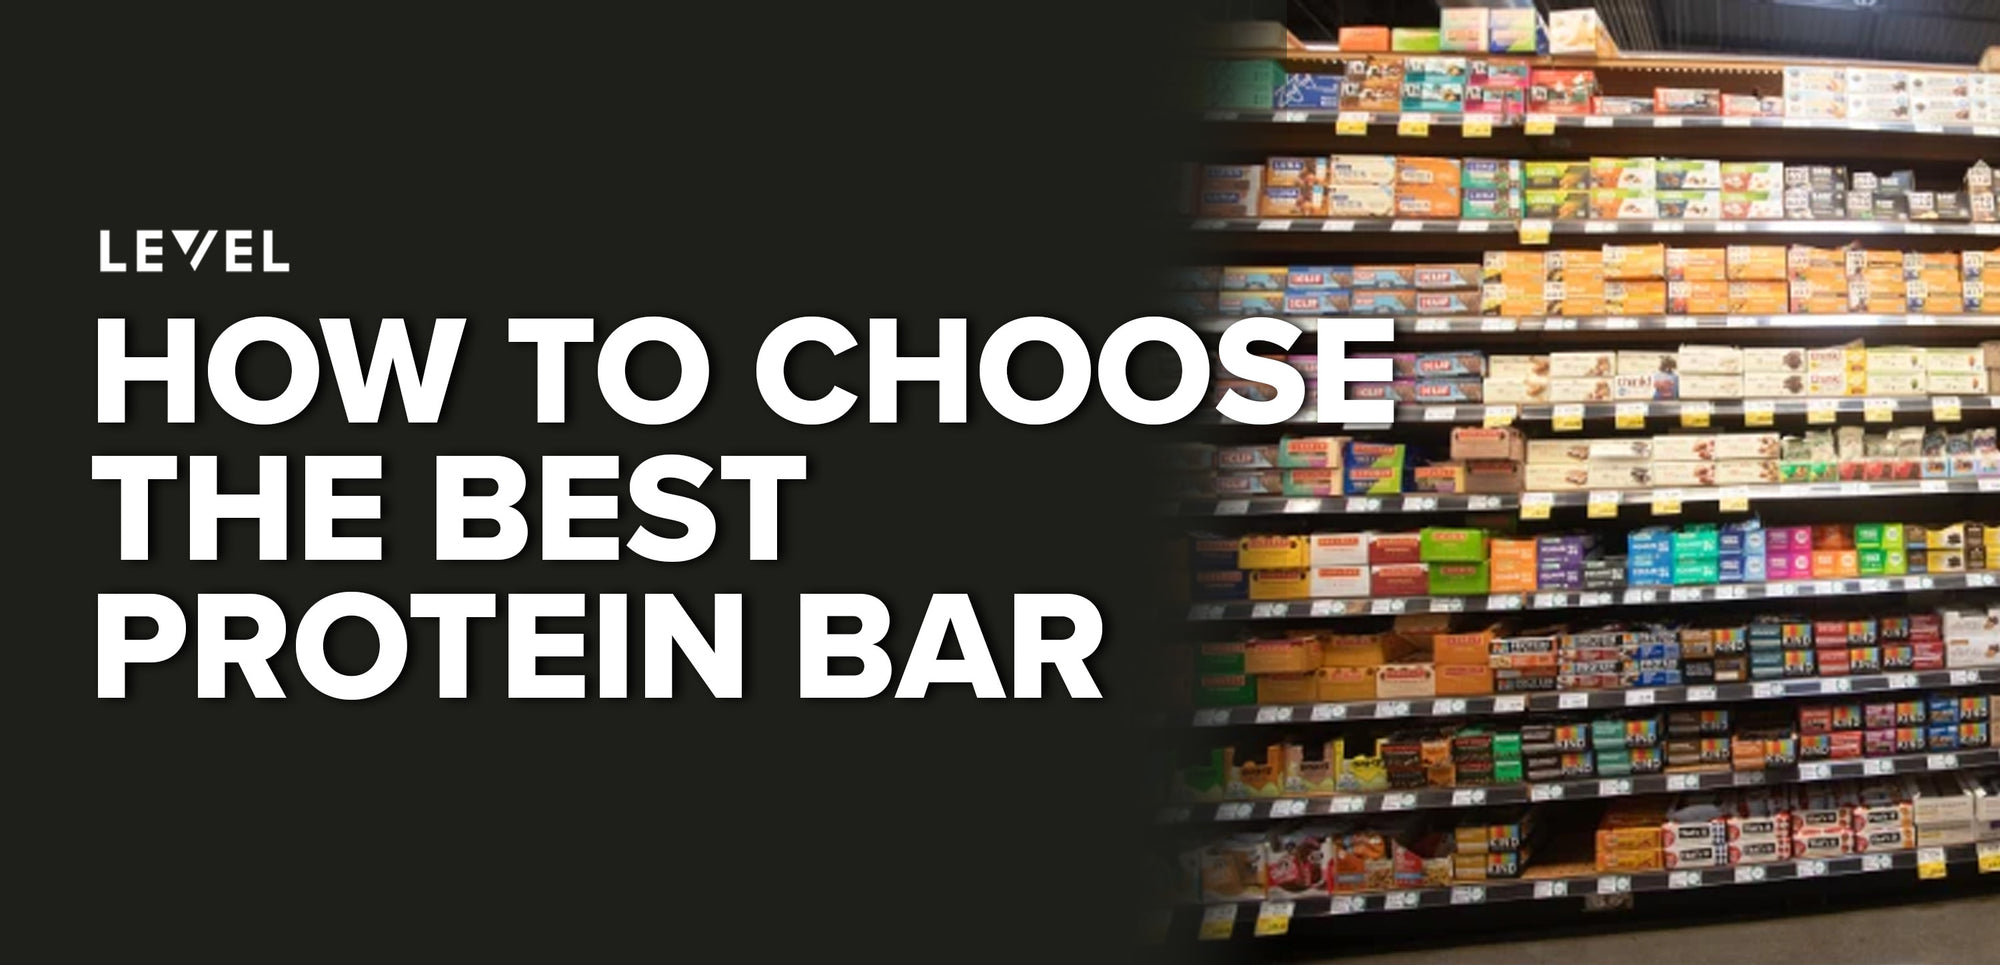 How to Choose The Best Protein Bar – 5 Easy Tips